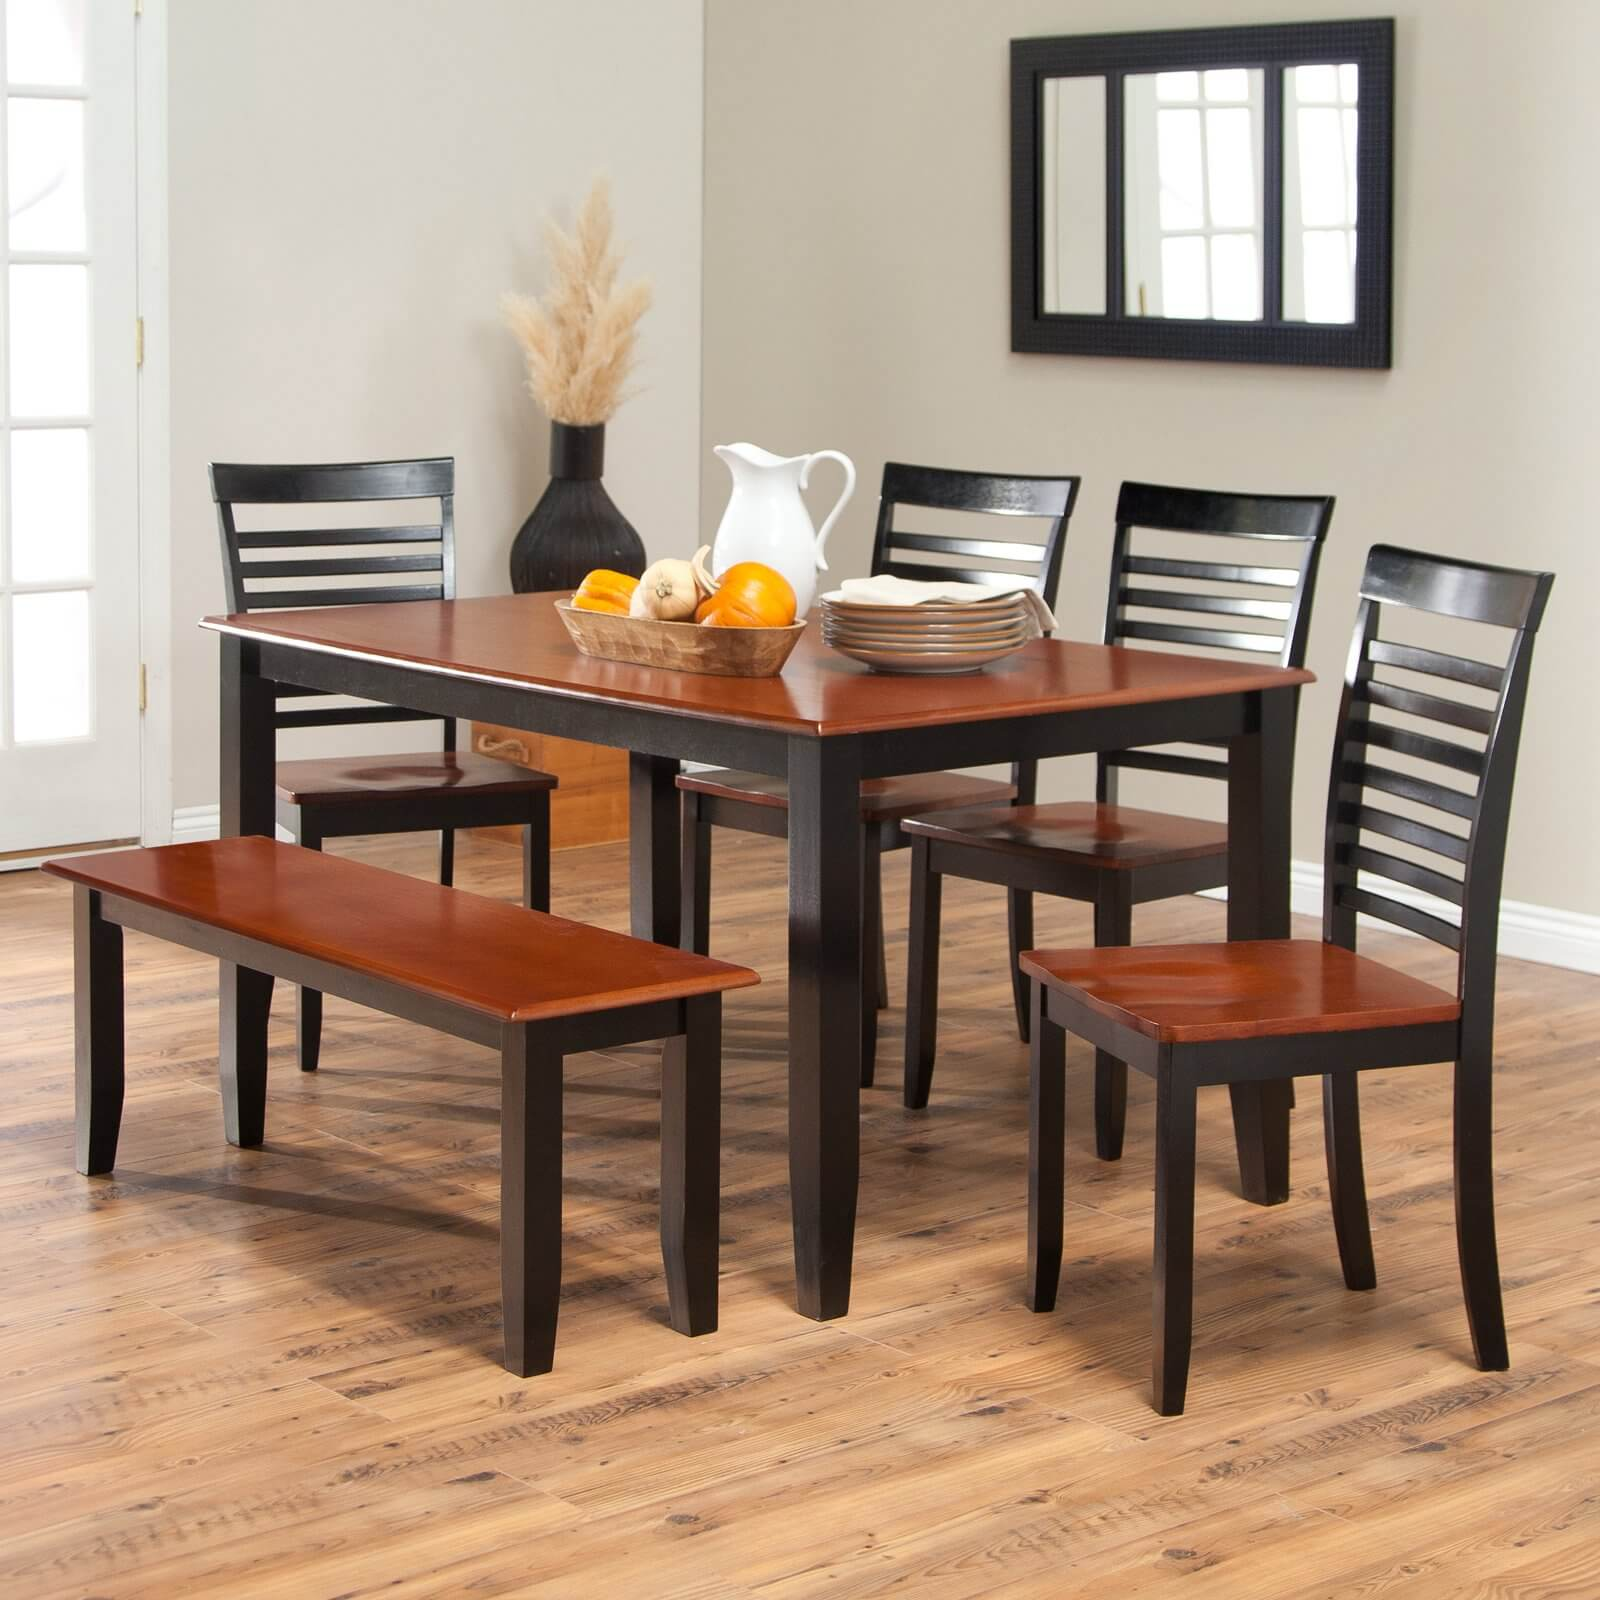 Two Toned Dining Set With Bench The Seats And Table Top Are Cherry